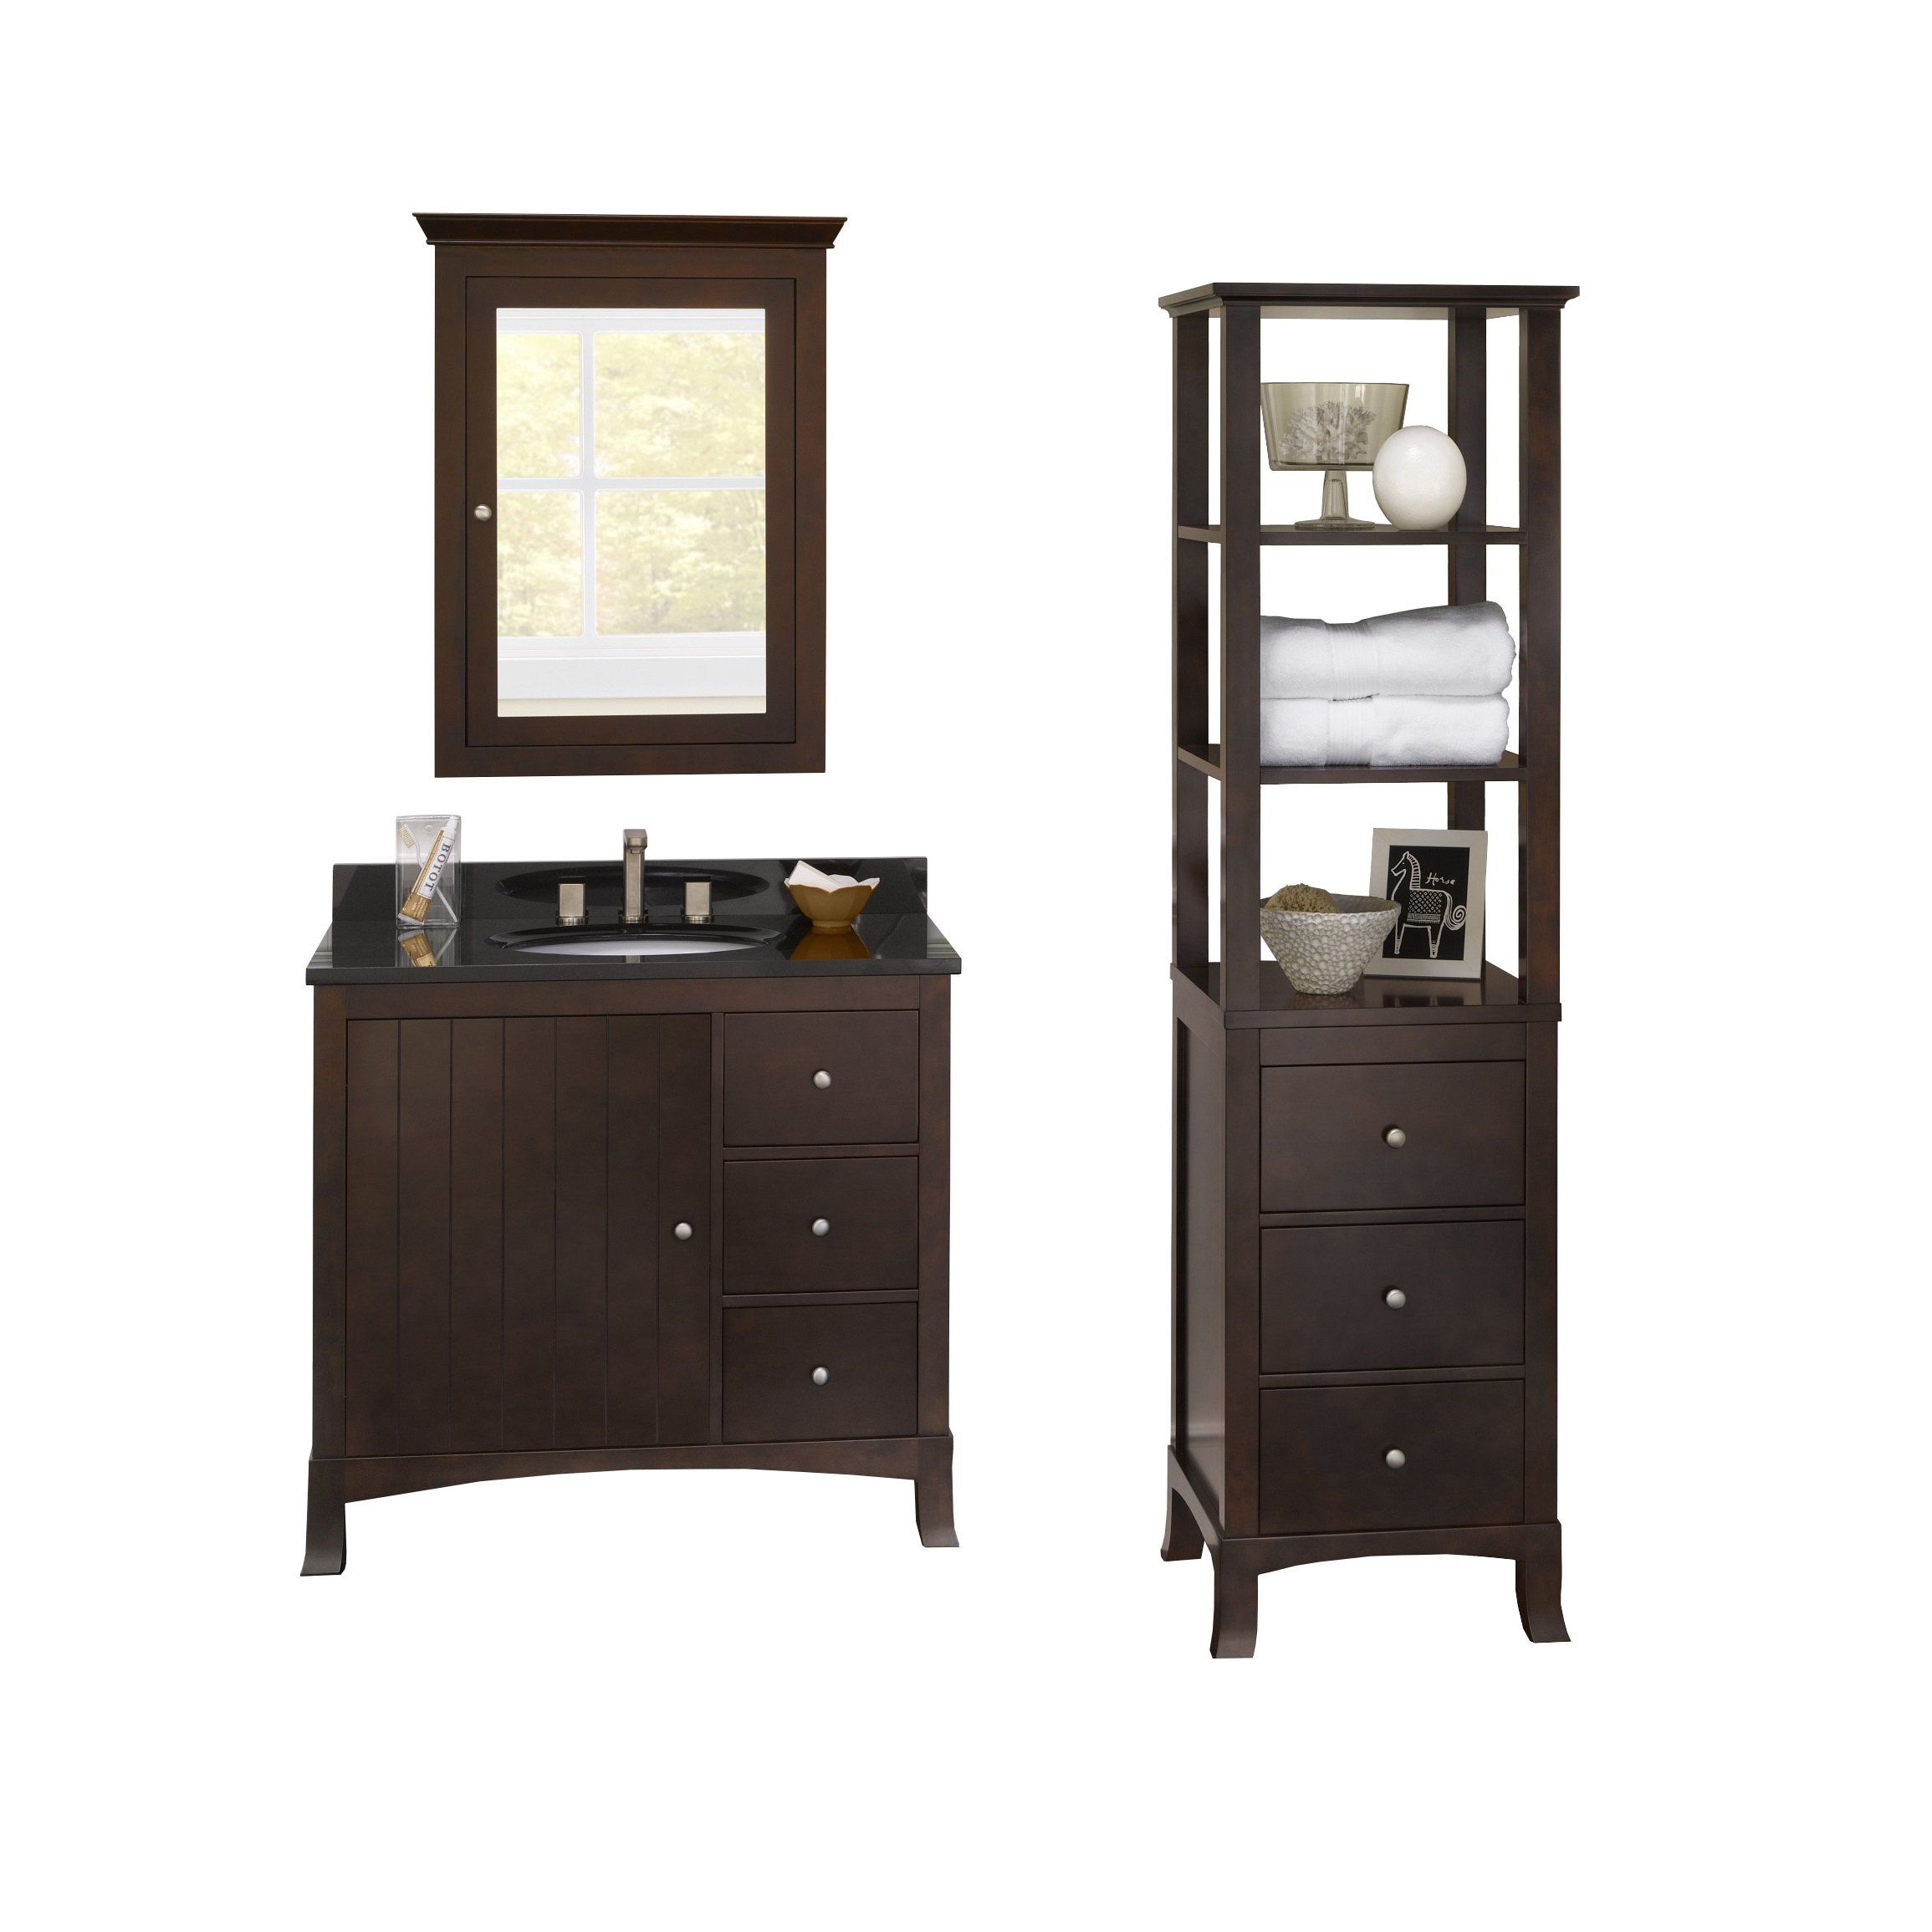 references decor com cabinets govannet vanity ideas at modern amazing magnificent bathroom home bath astounding appealing top aytsaid best cabinet ashburn of cameron foremost only